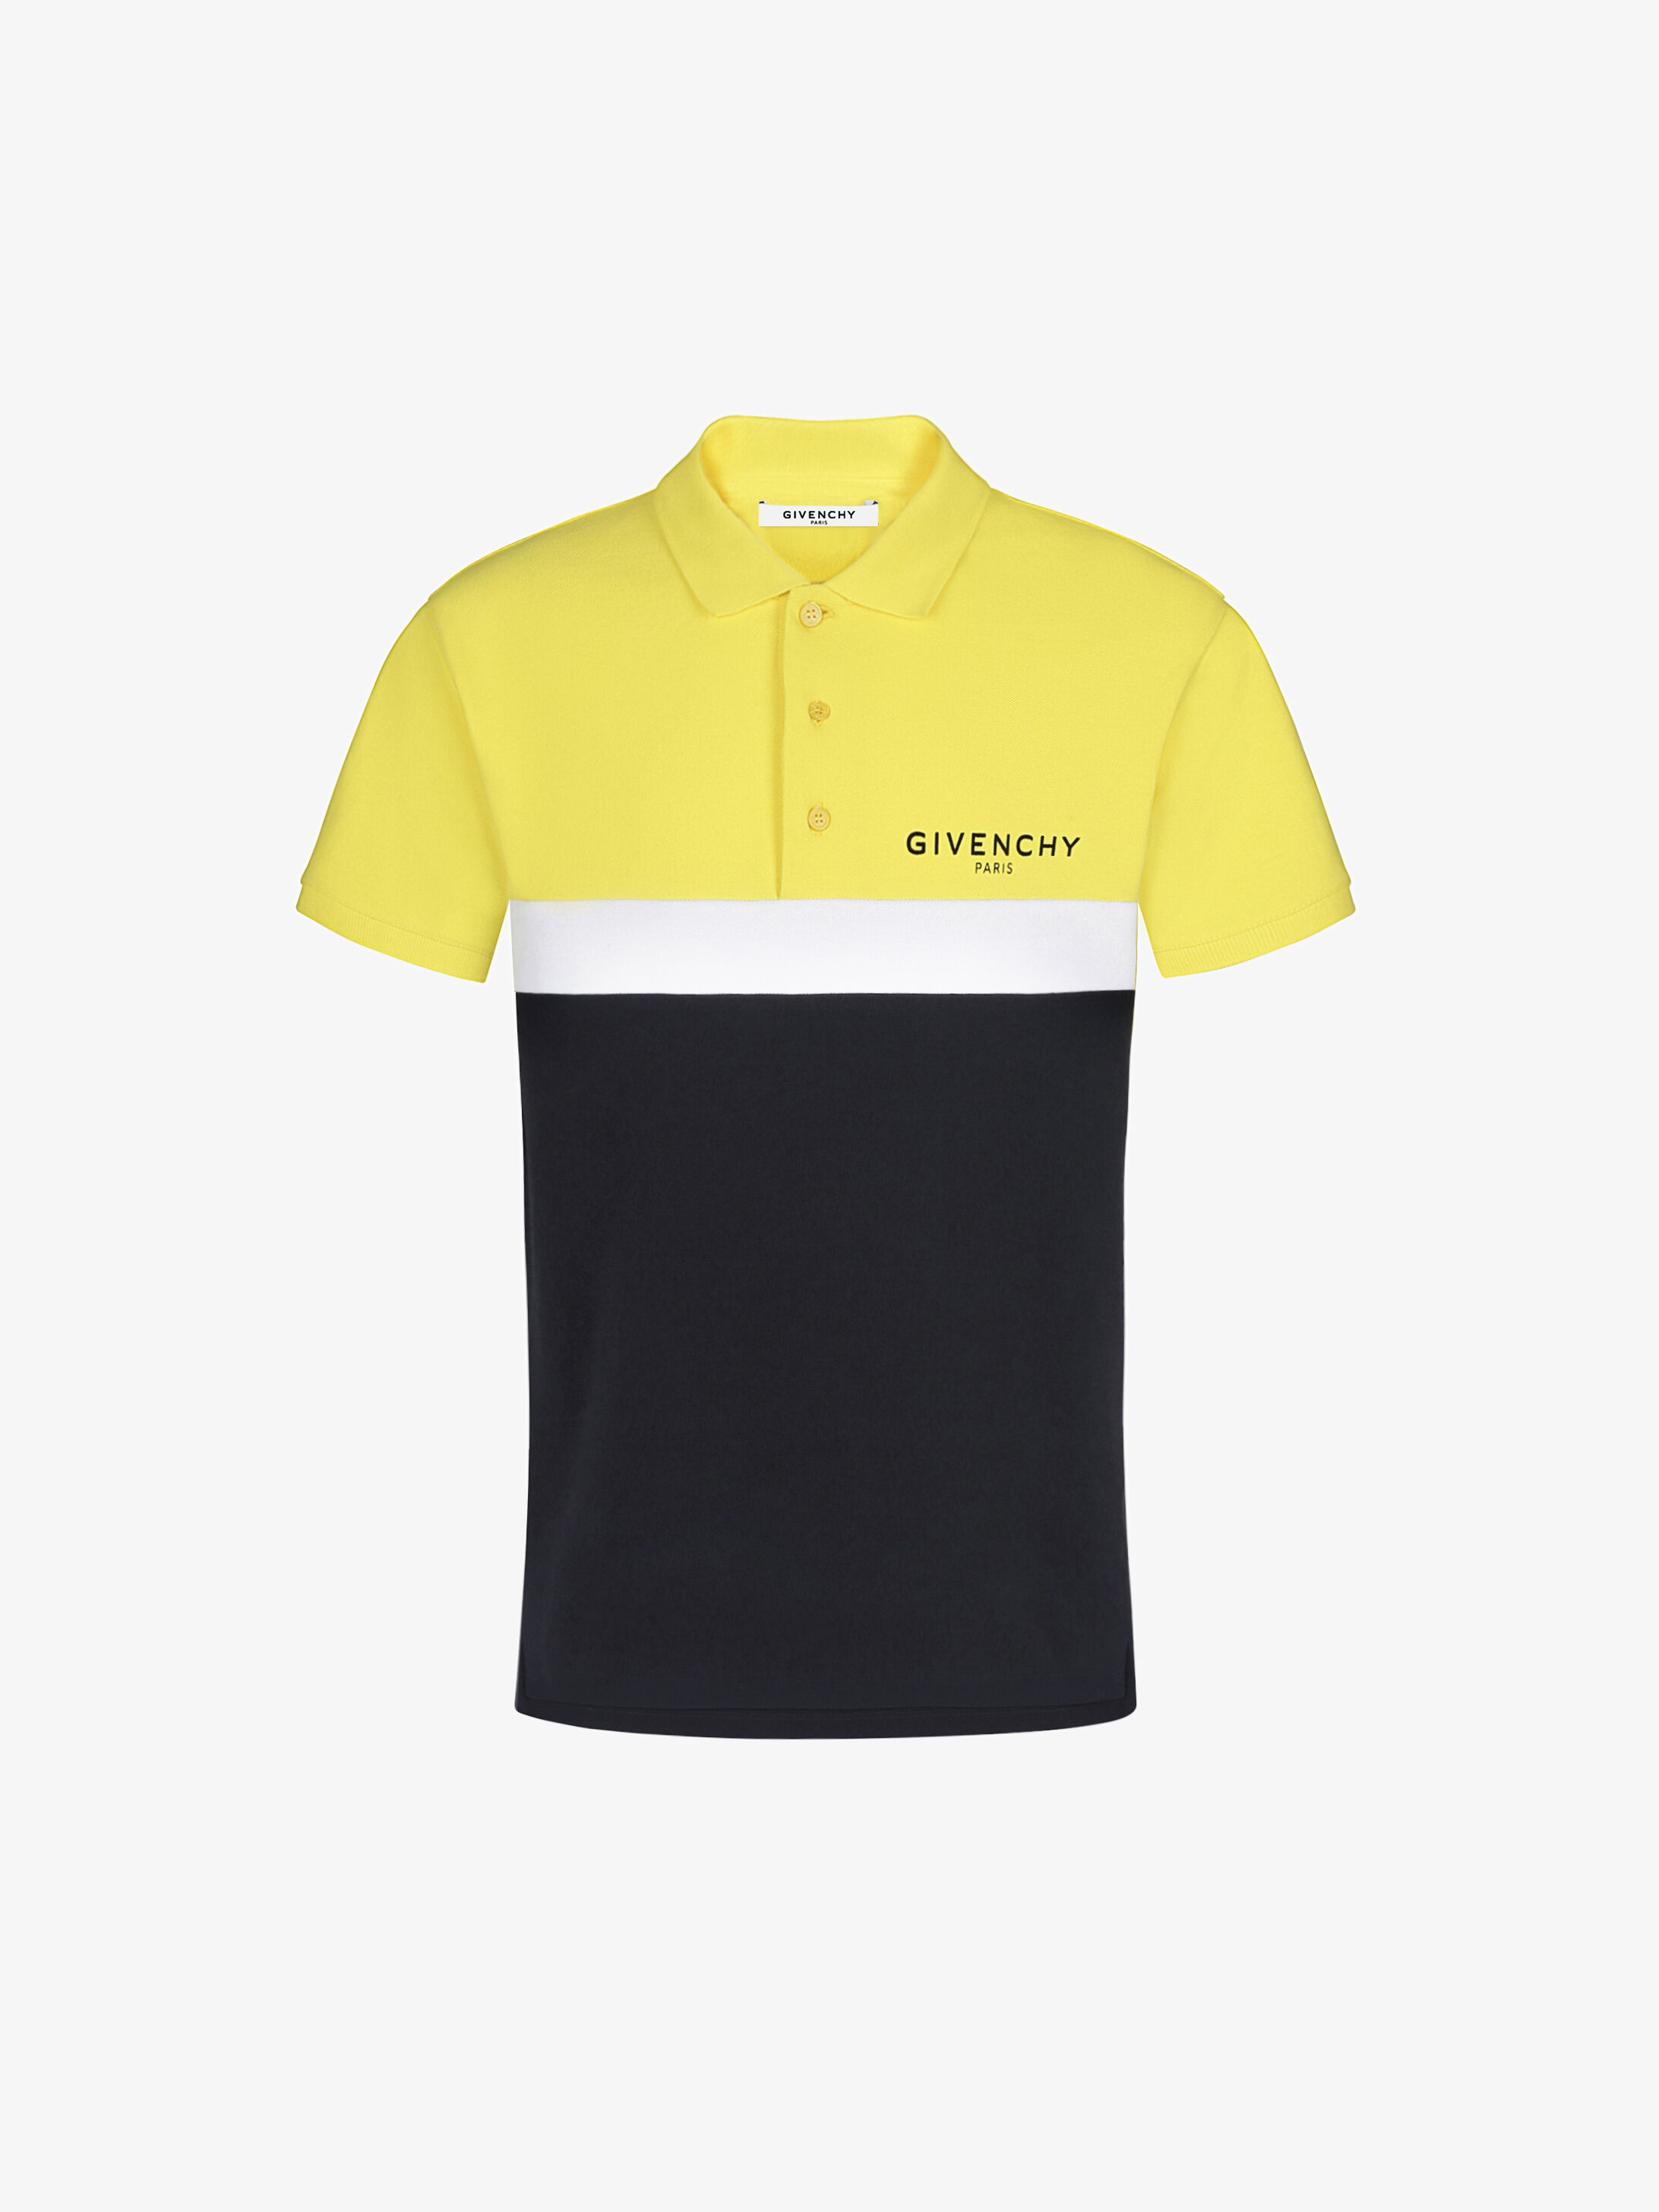 eceb0a9d7 Men's T-Shirts collection by Givenchy. | GIVENCHY Paris